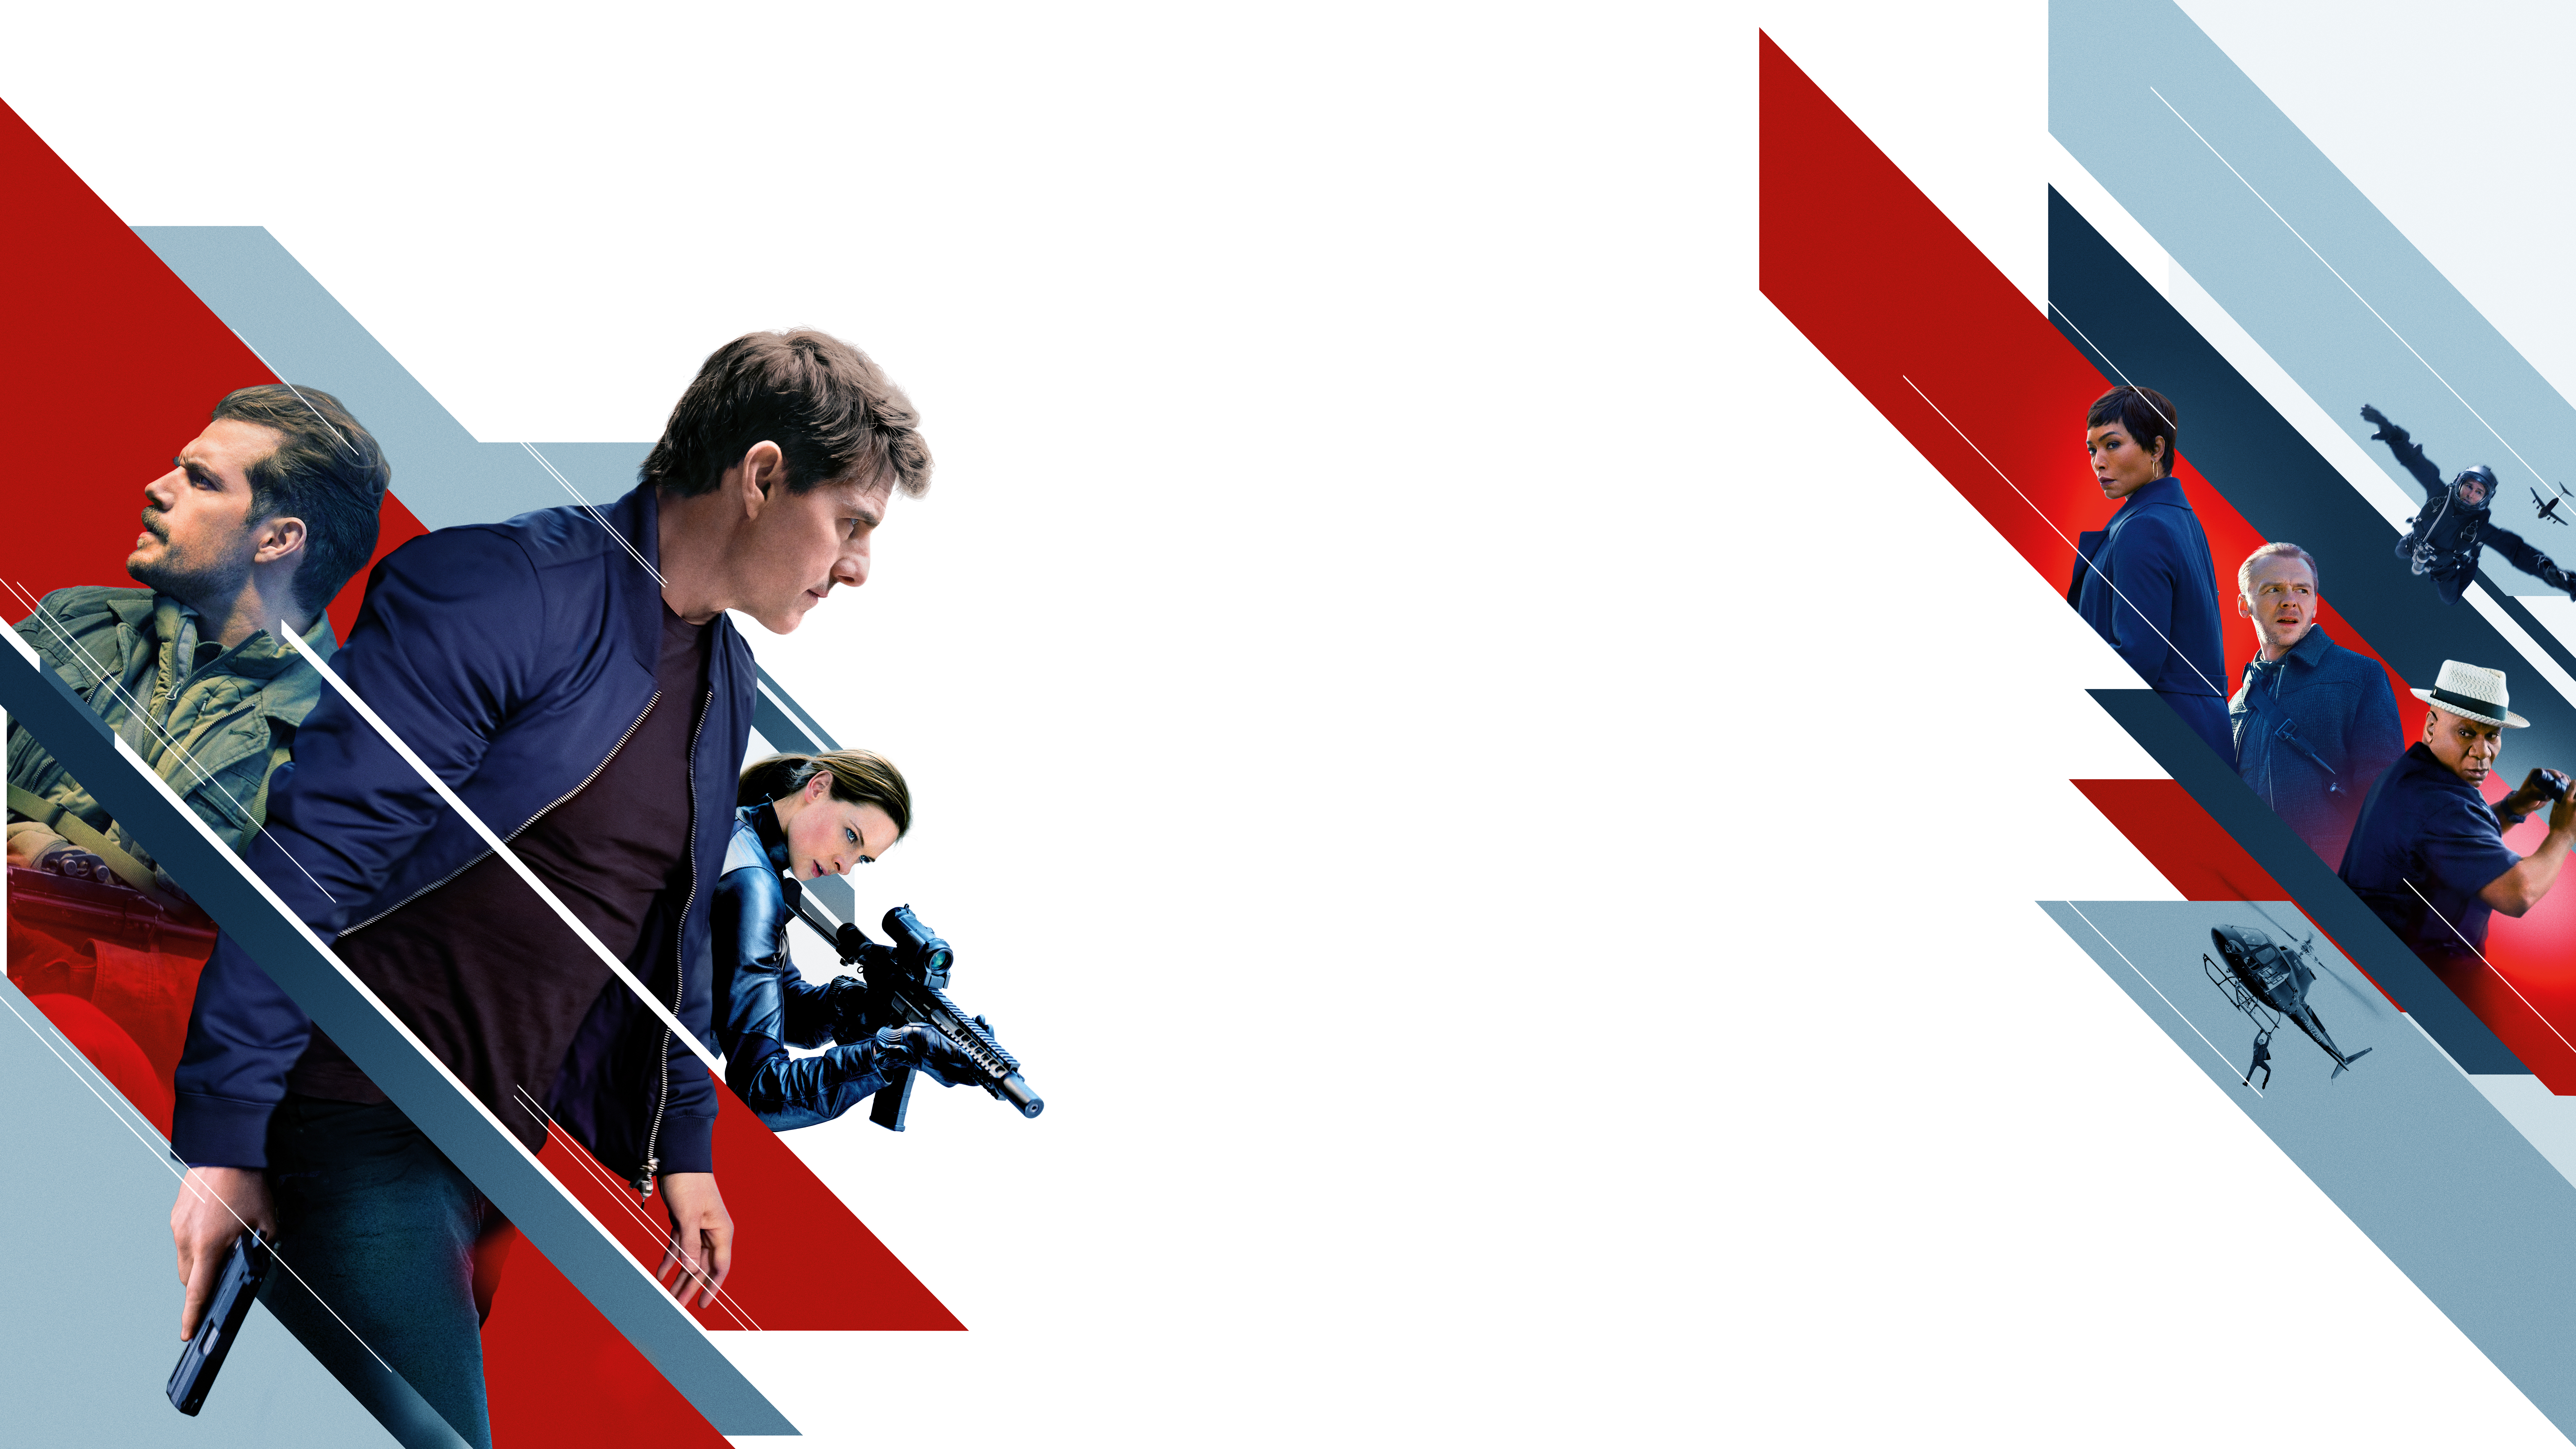 mission-impossible-fallout-2018-10k-p0.j